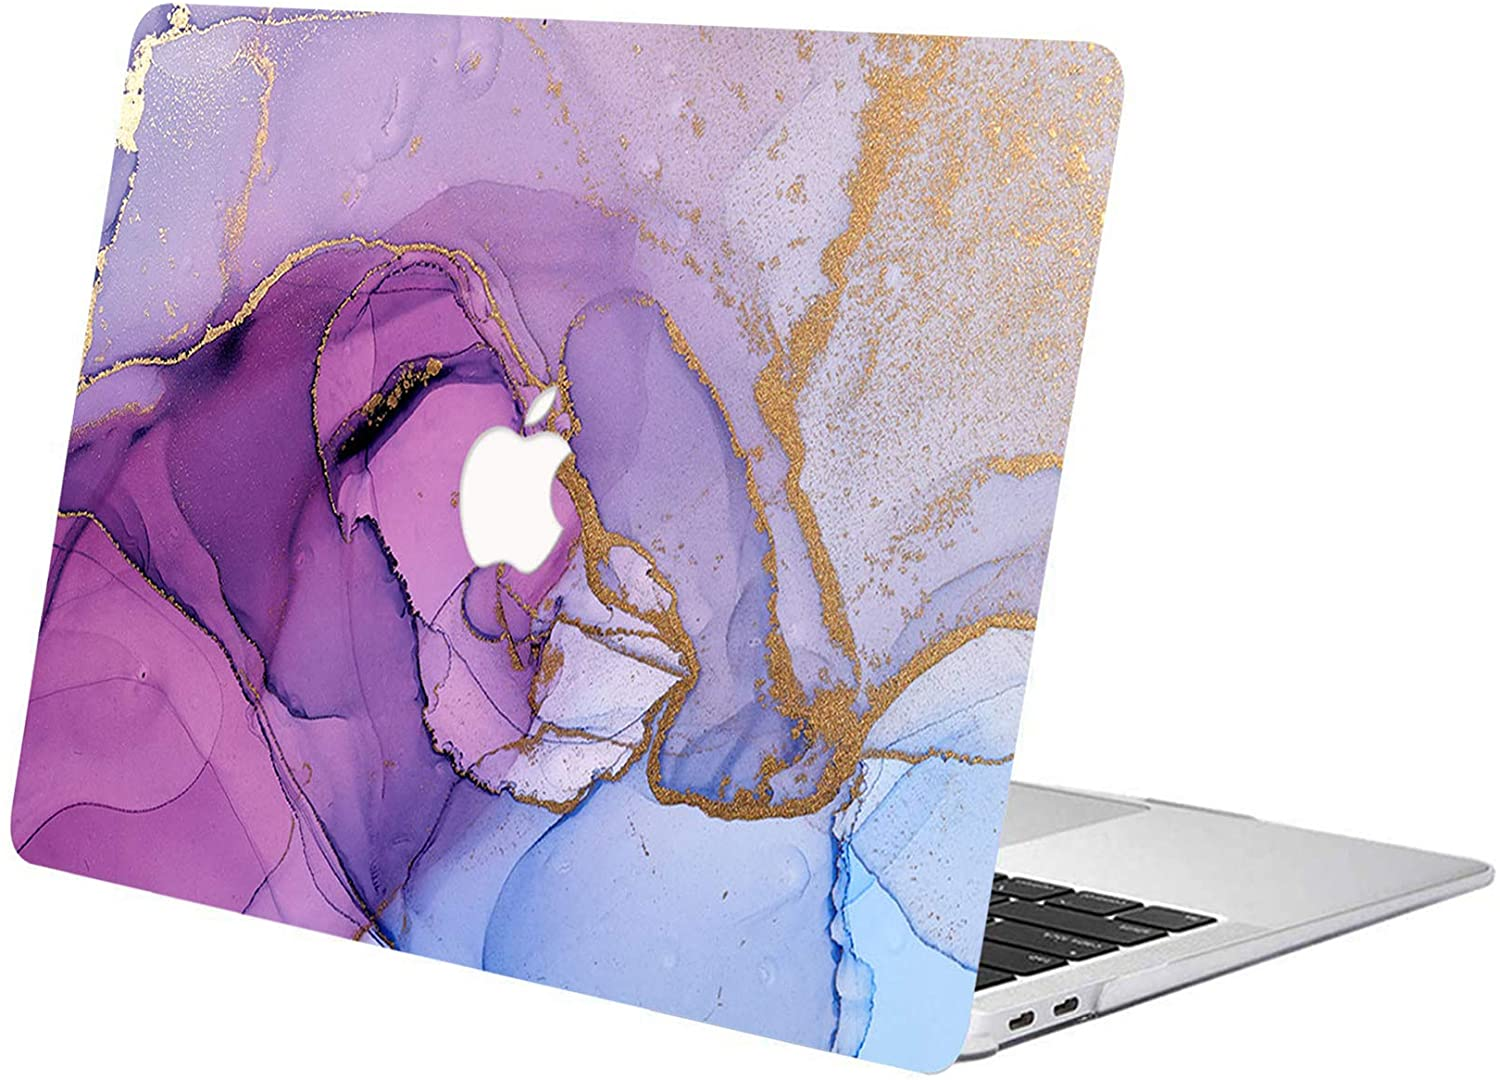 ACJYX MacBook Air 13 inch Case 2020 2019 2018 Release Model A1932 A2179 Smooth Plastic Protective Shell with Patterns Printed on Laptop Hard Cover for New Version MacBook Air 13